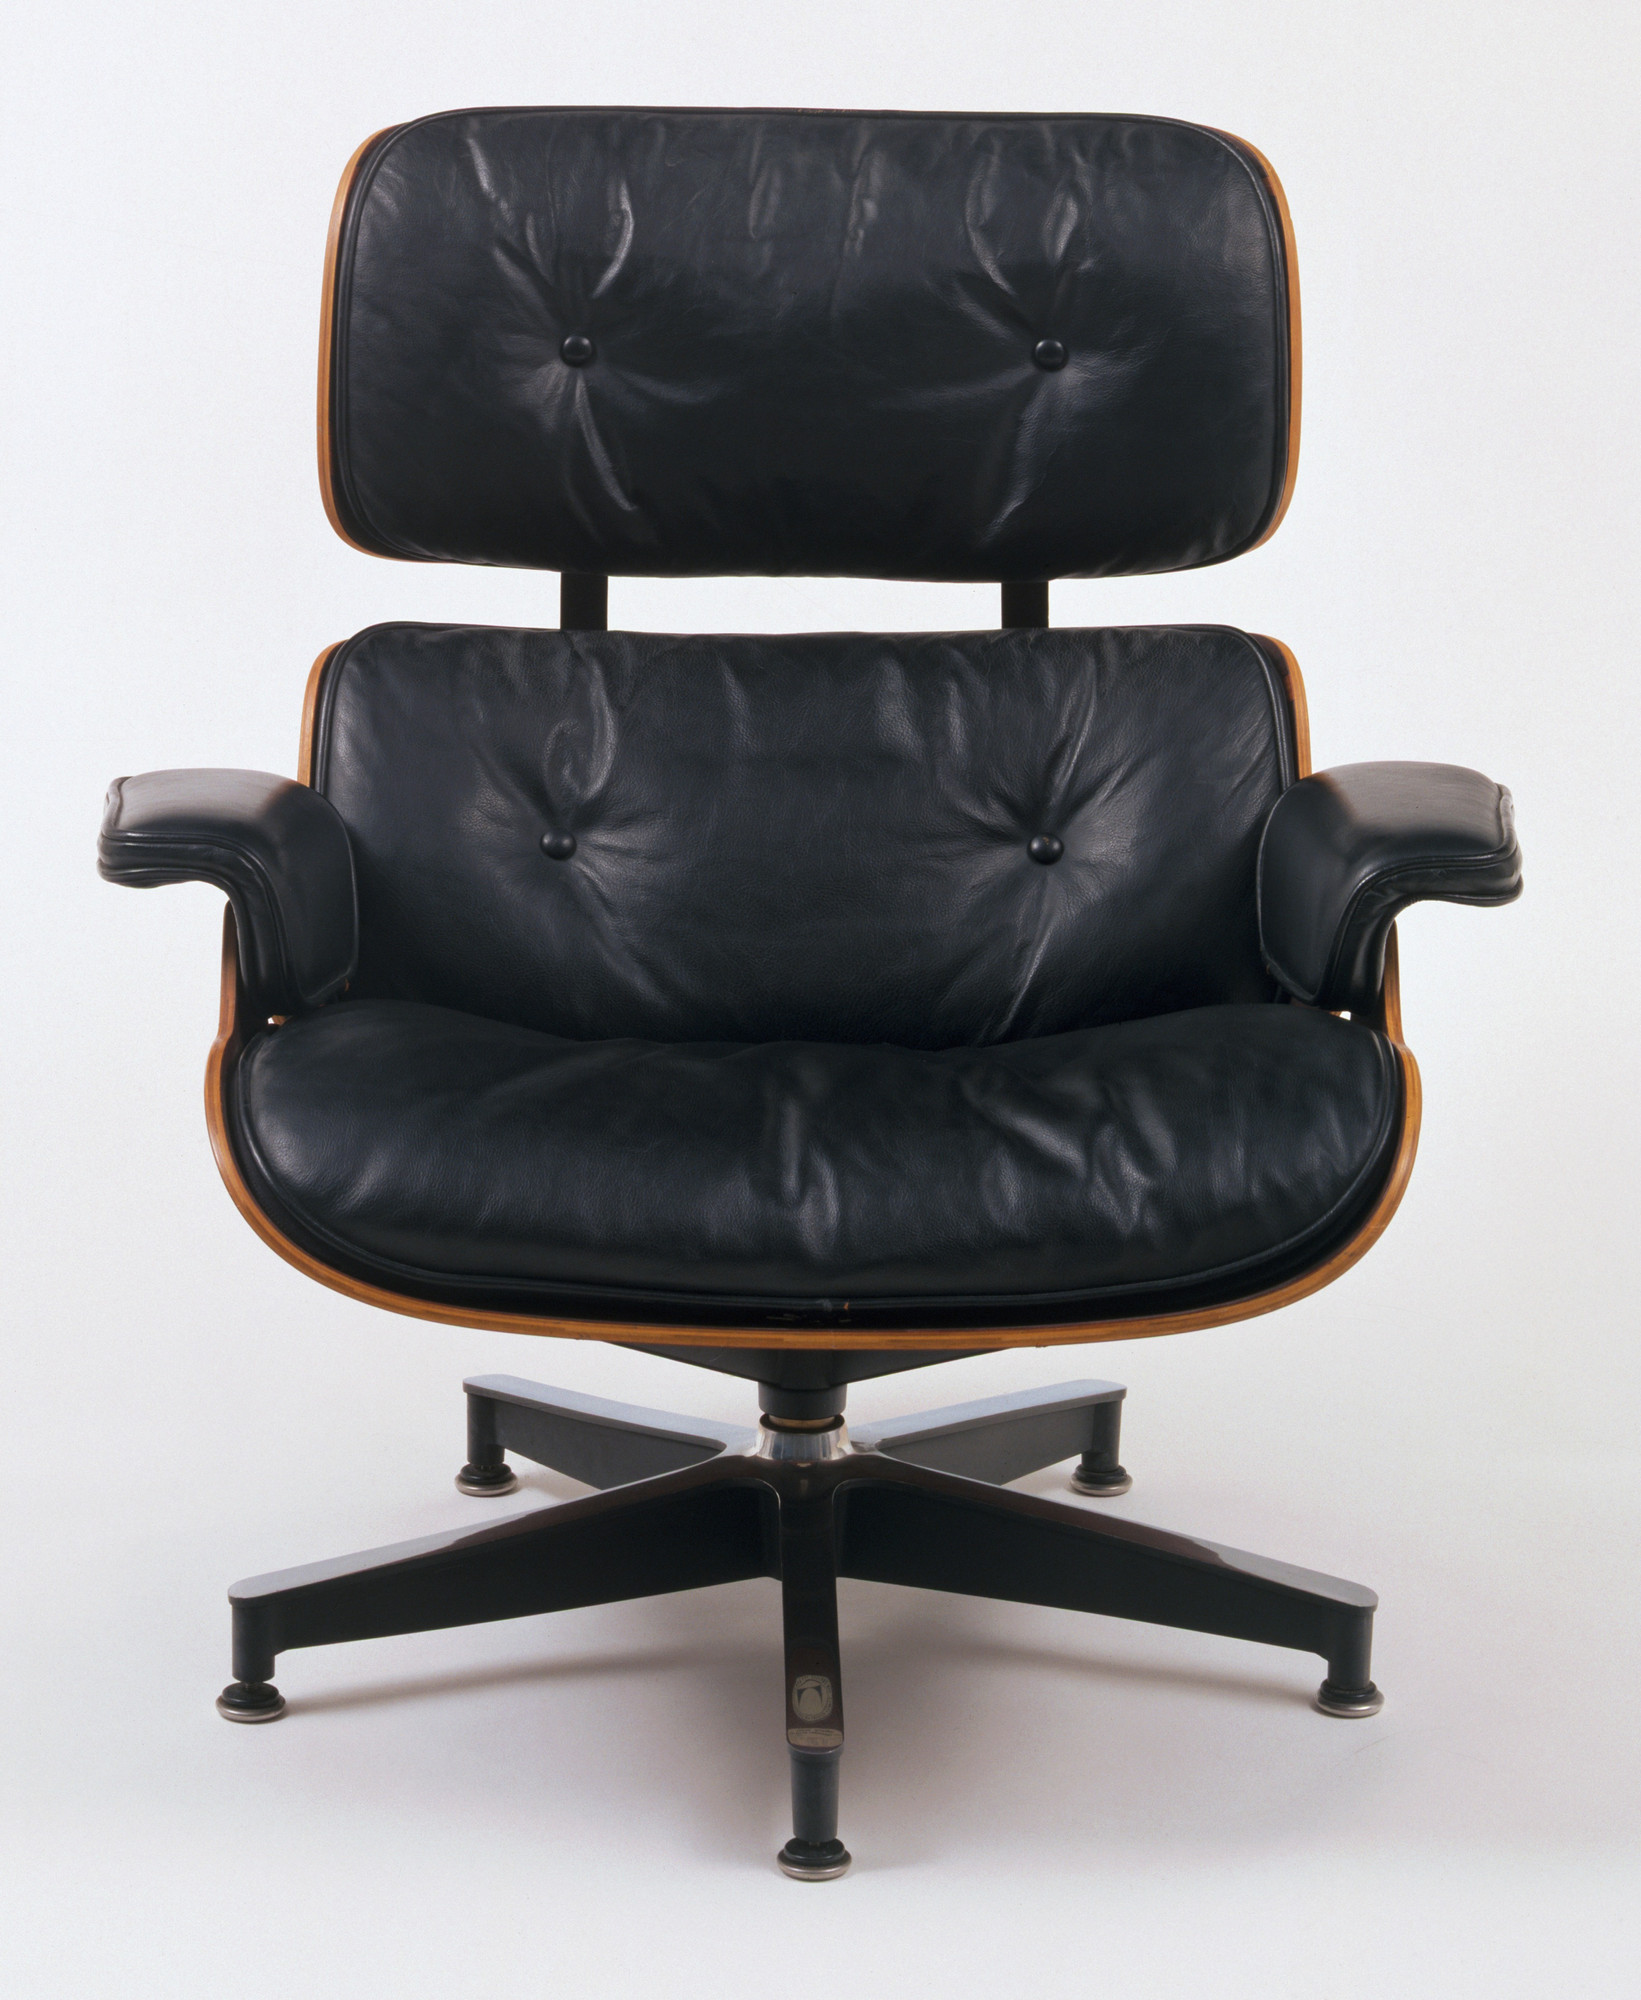 Incredible Charles Eames Ray Eames Lounge Chair And Ottoman 1956 Moma Machost Co Dining Chair Design Ideas Machostcouk